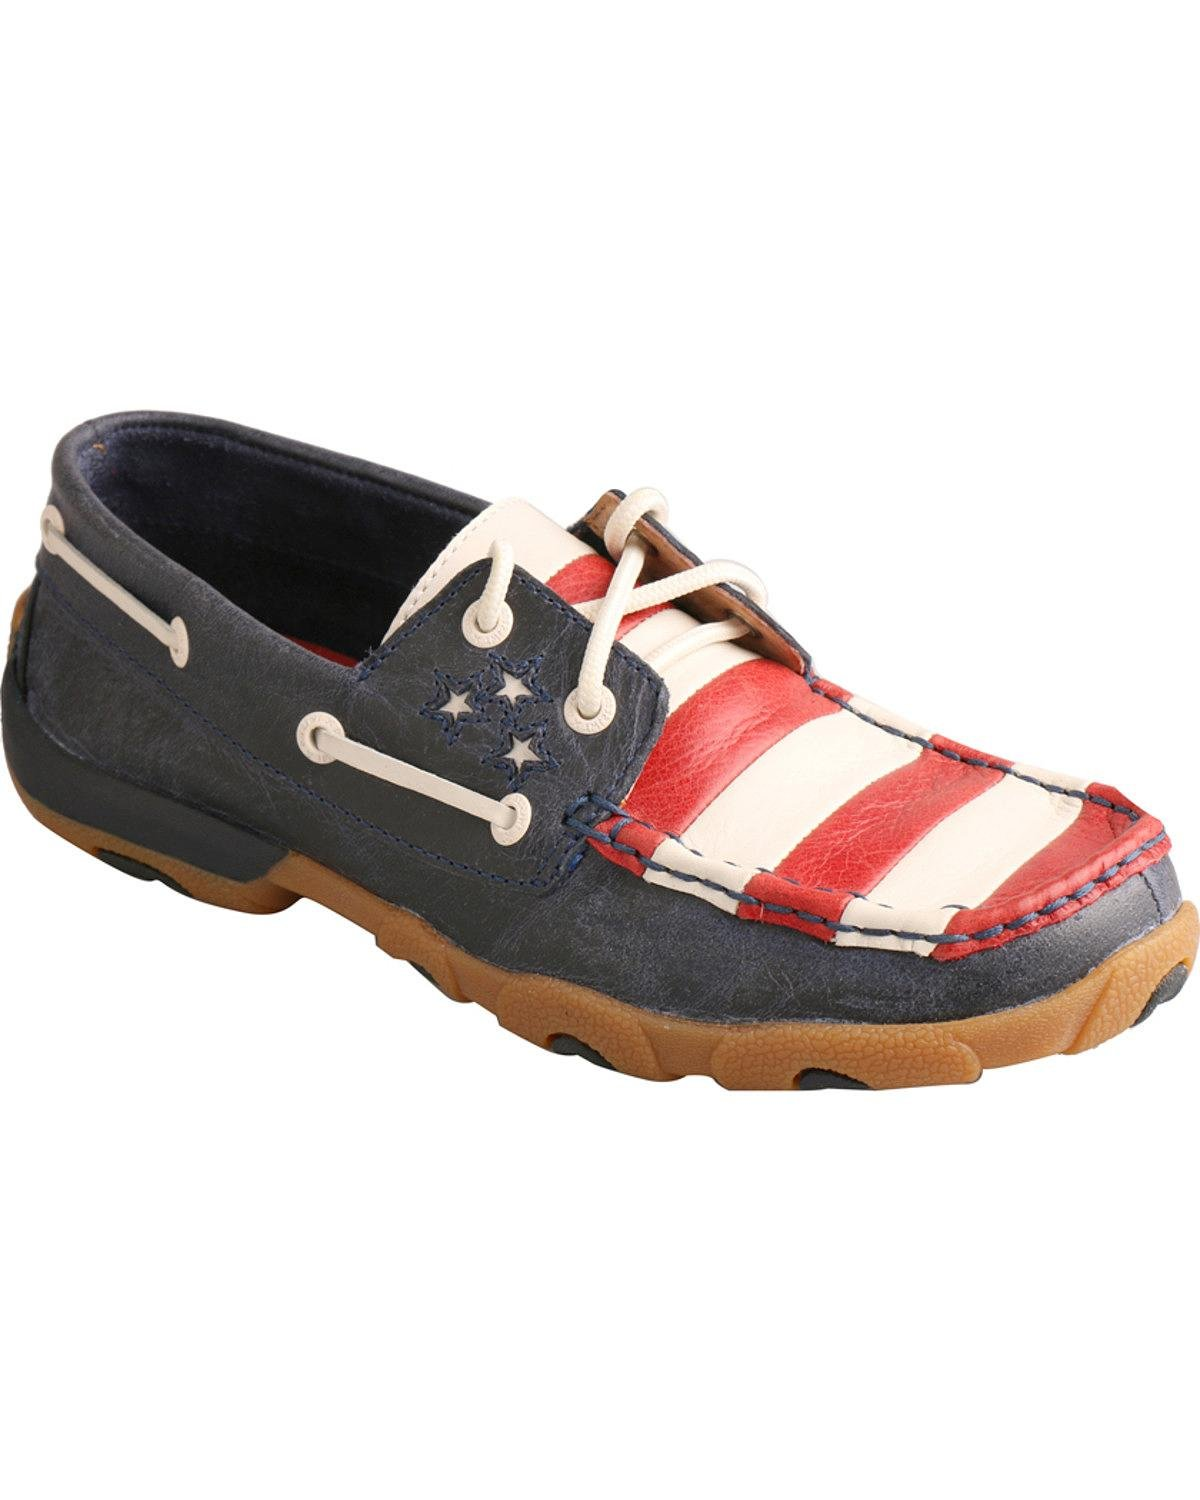 Twisted X Casual shoes Womens Driving Mocs Stars 8 M bluee WDM0017